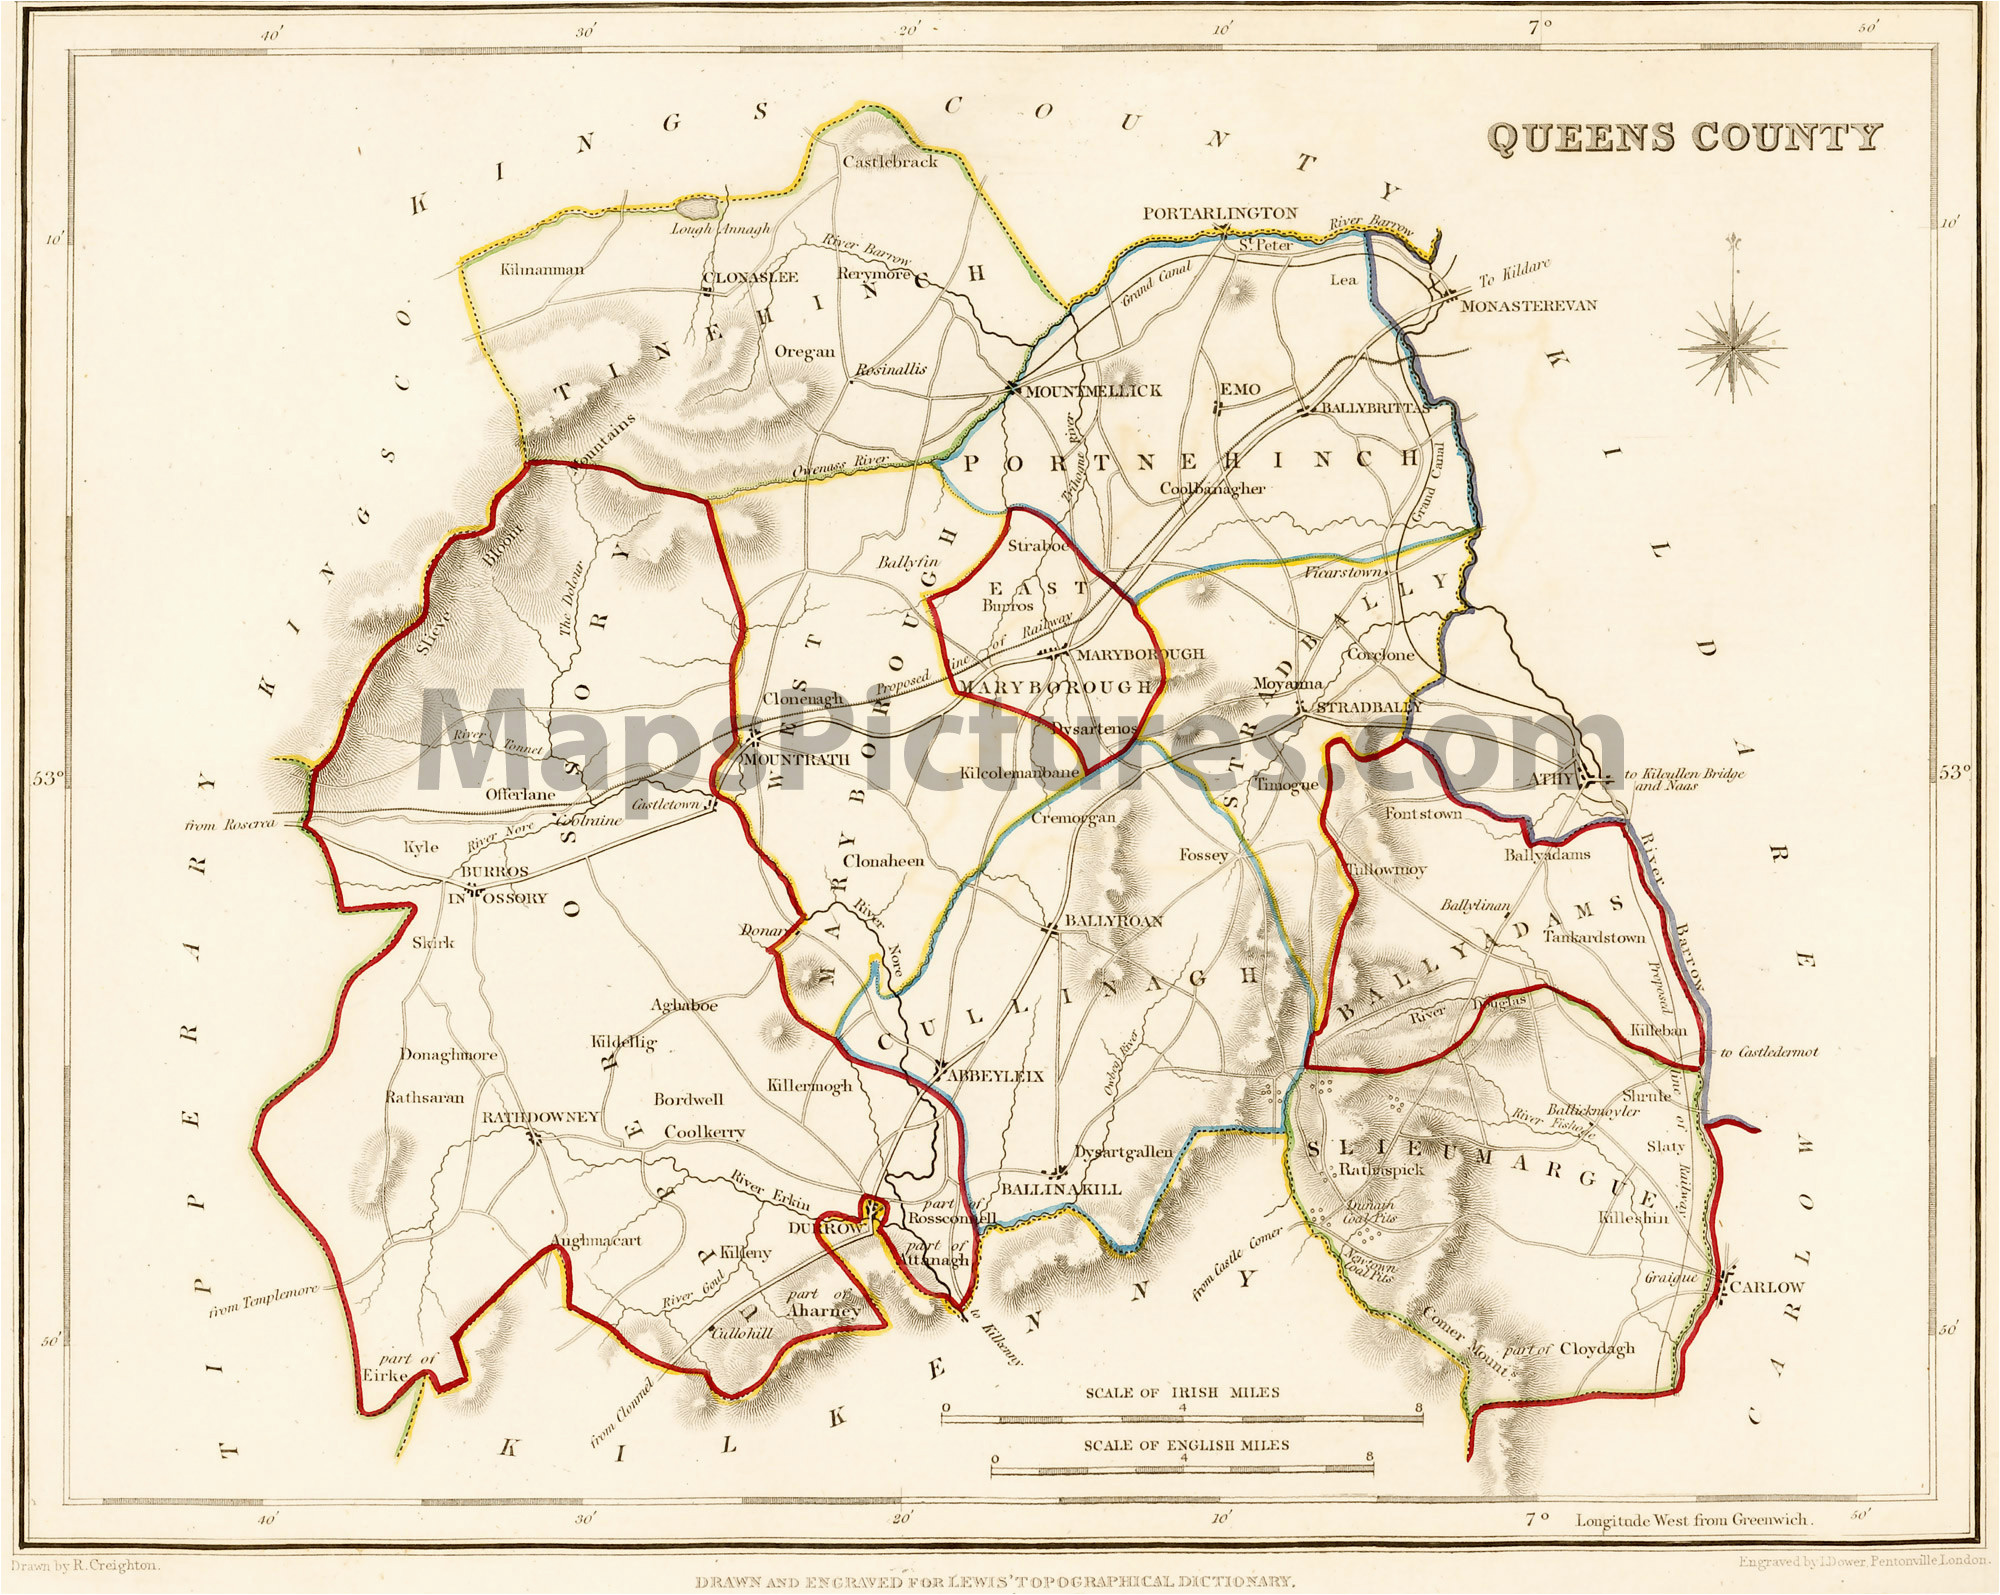 county queens county laois ireland map 1837